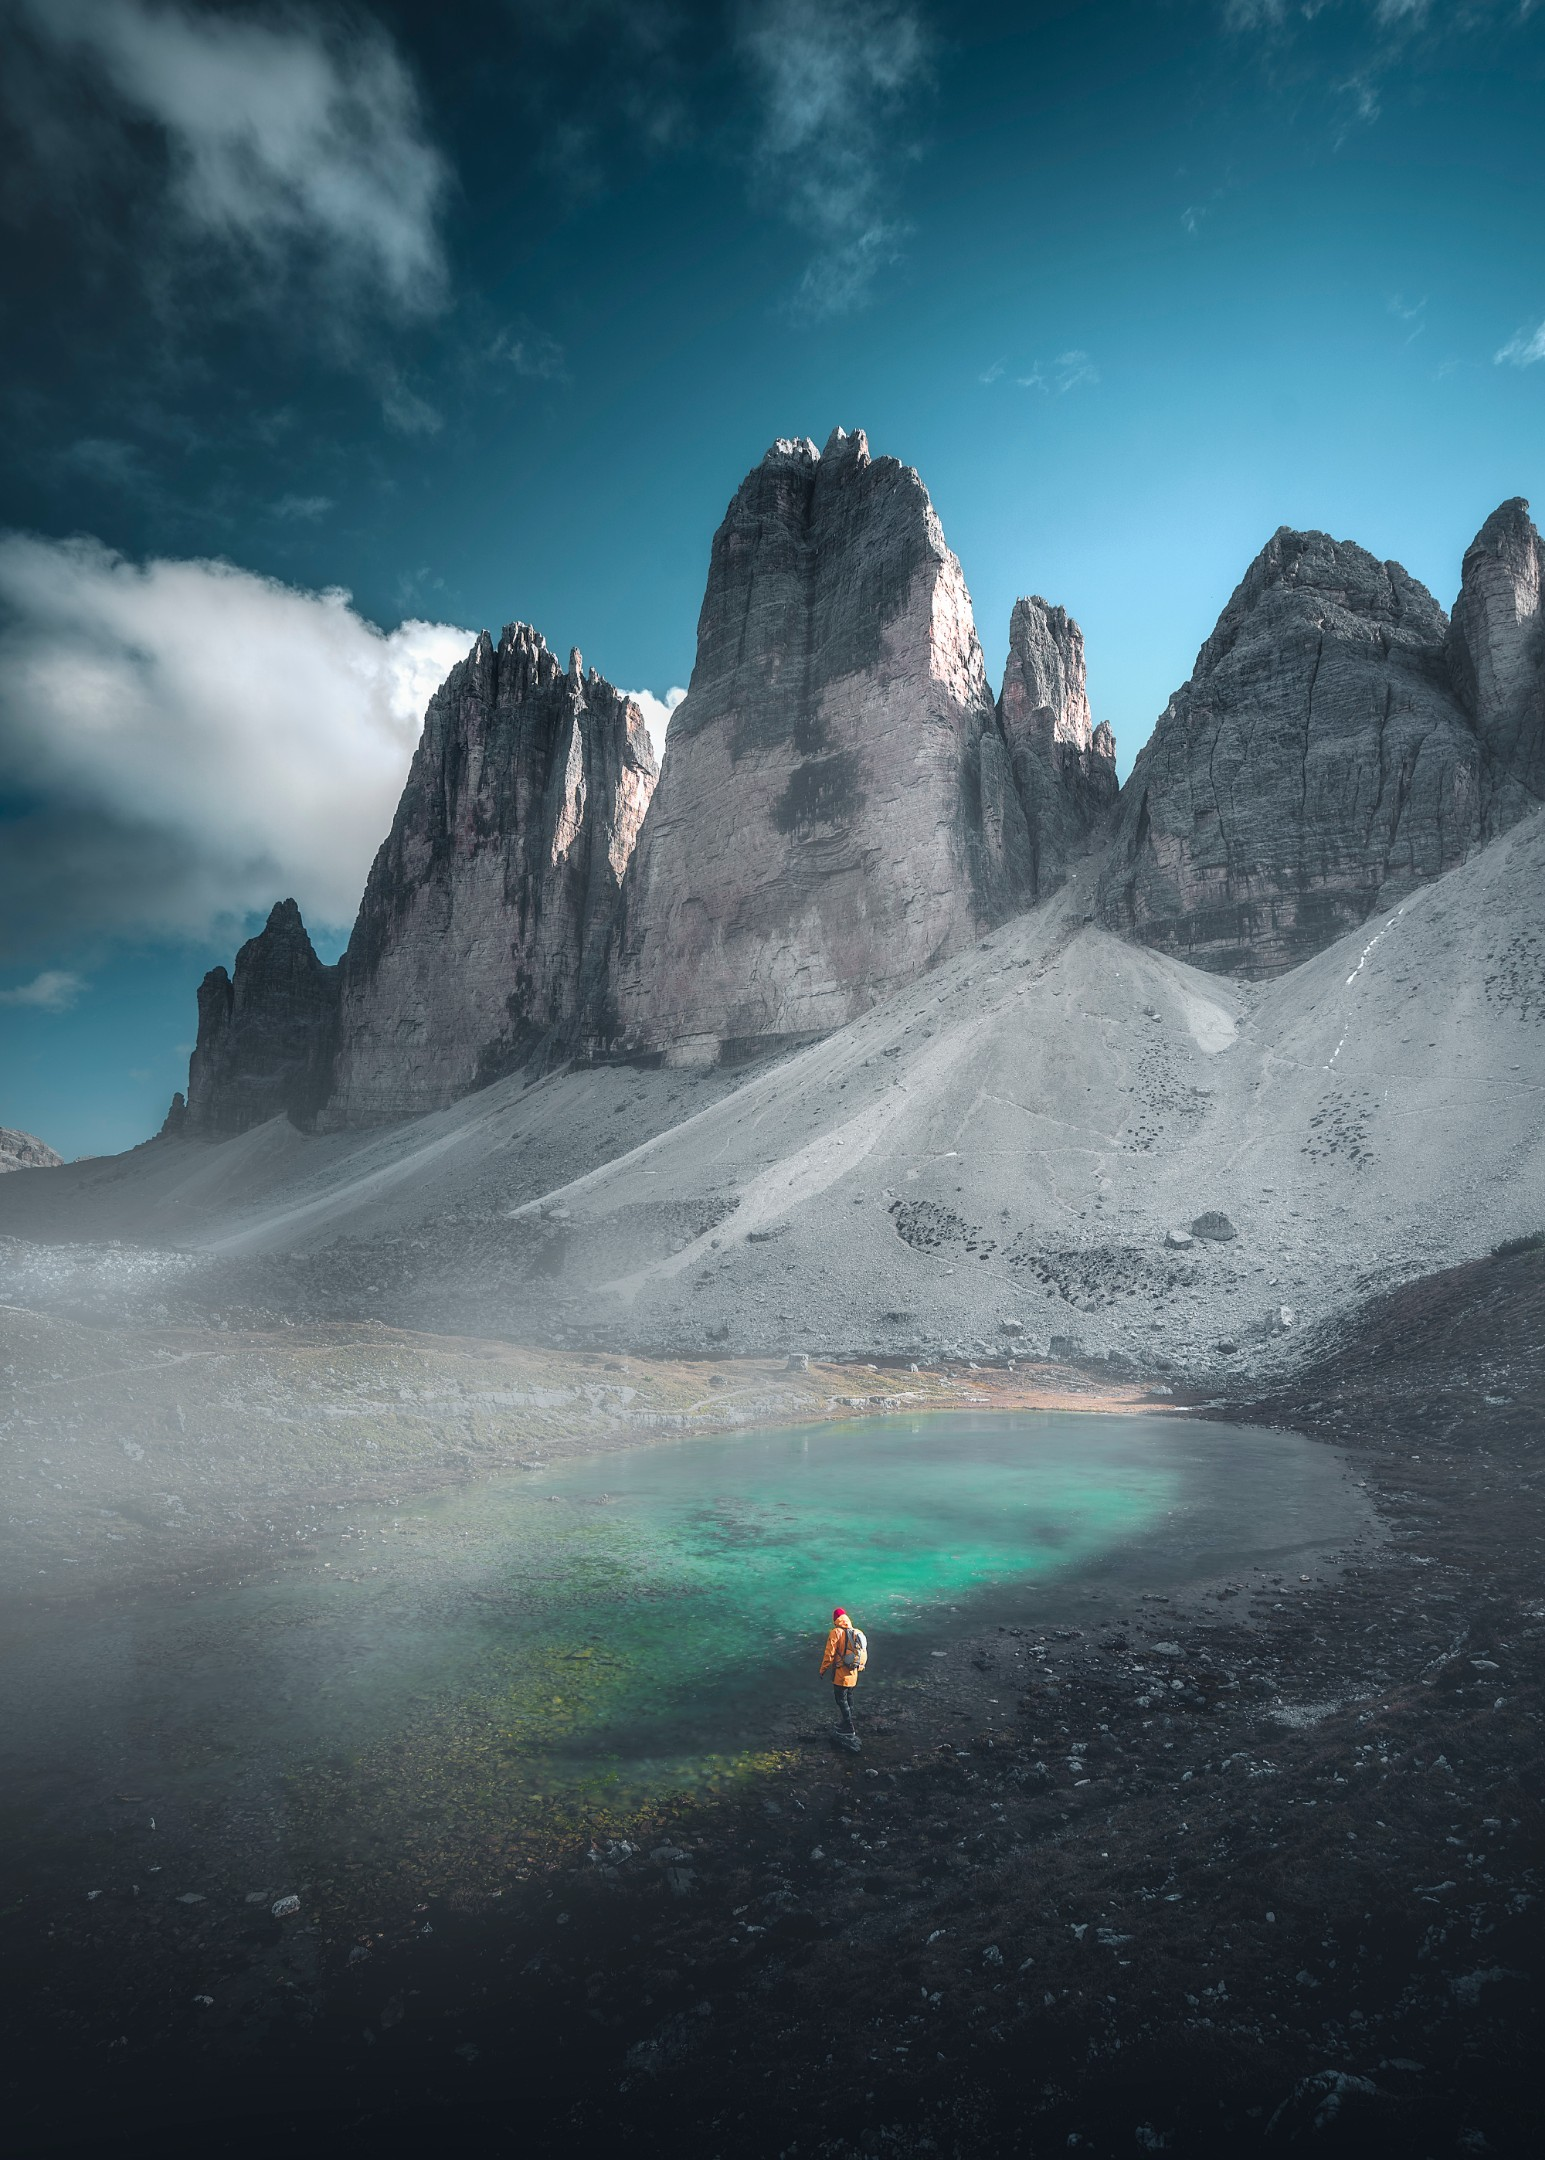 10 Things to consider when shooting Landscapes